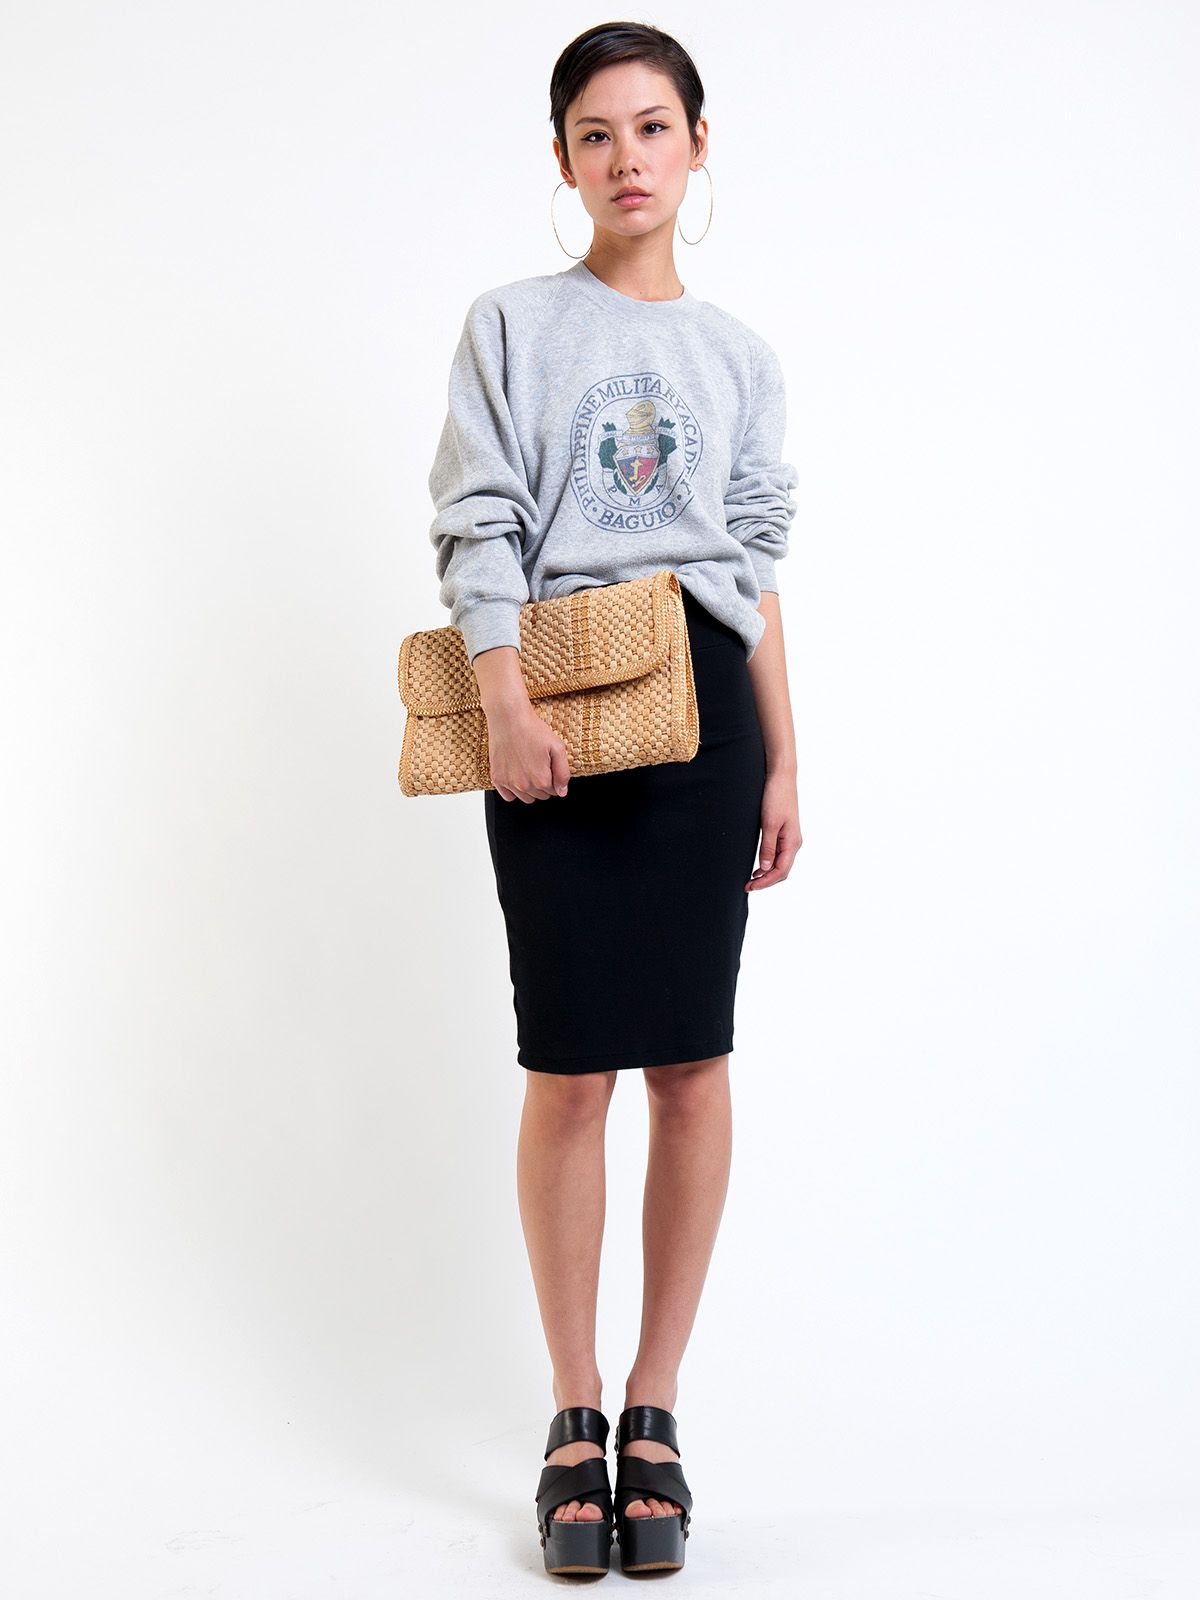 Perfect summer clutch; check it out now on R29Shops!